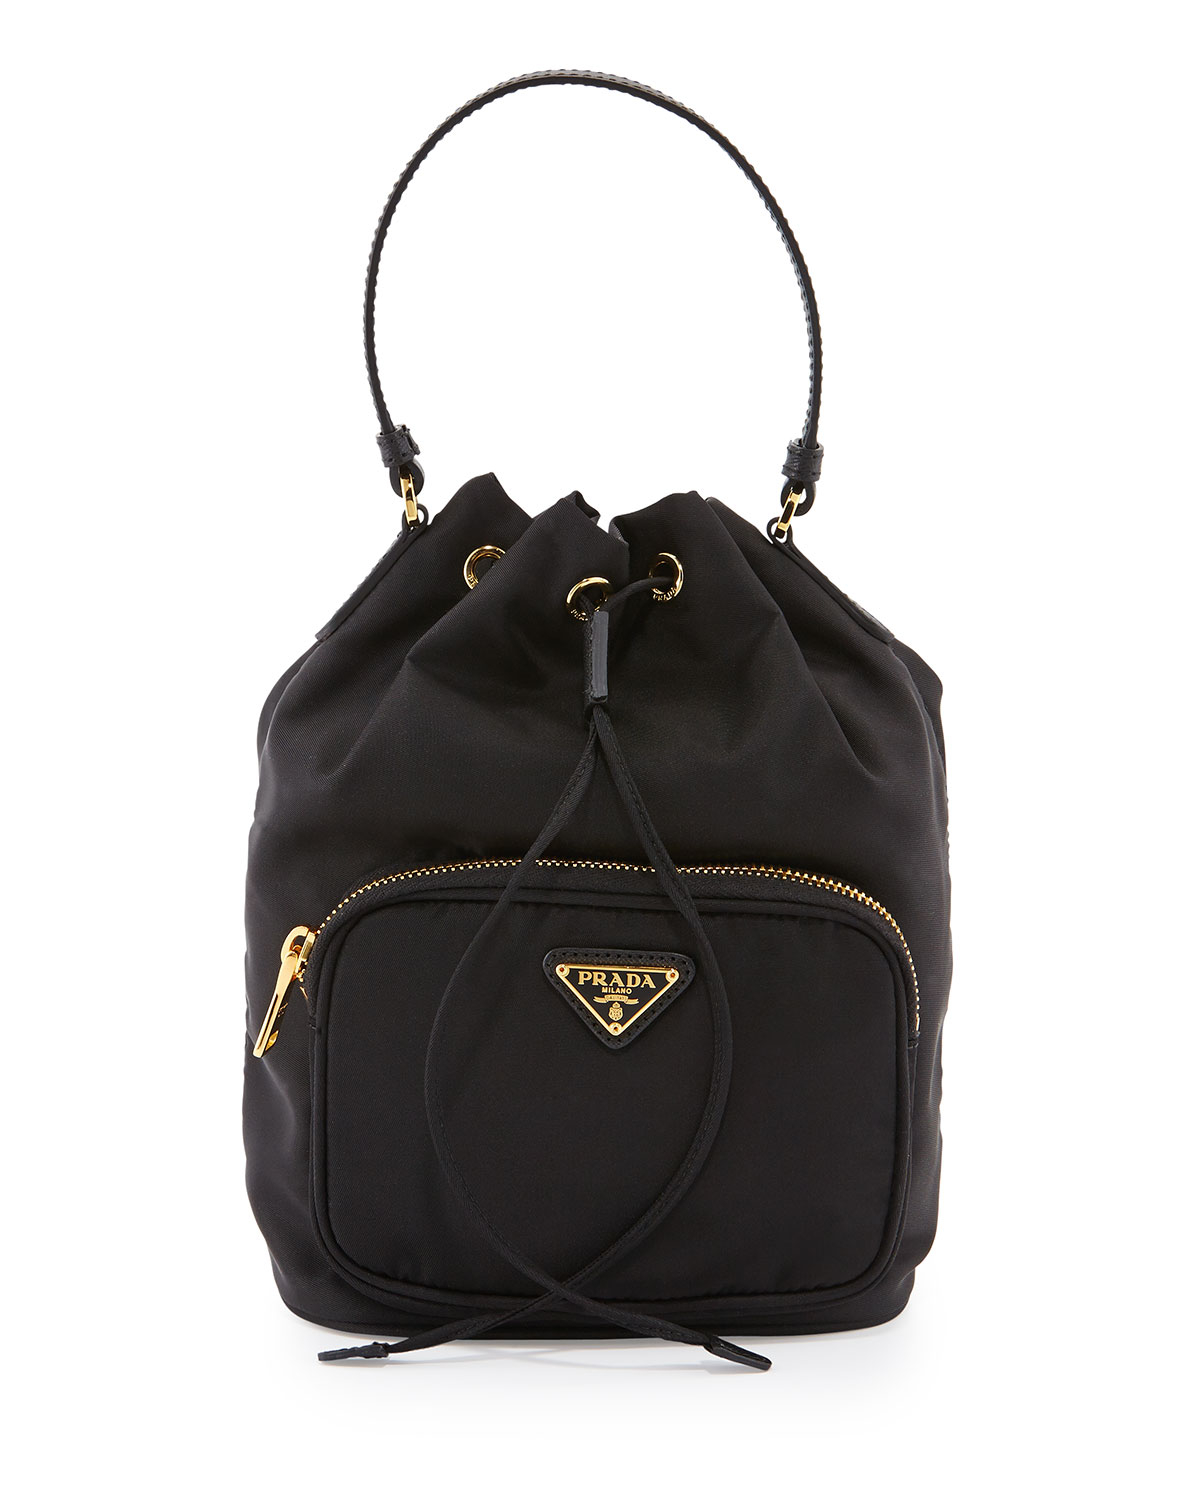 prada bag price - Prada Tessuto Mini Bucket Crossbody Bag in Black | Lyst